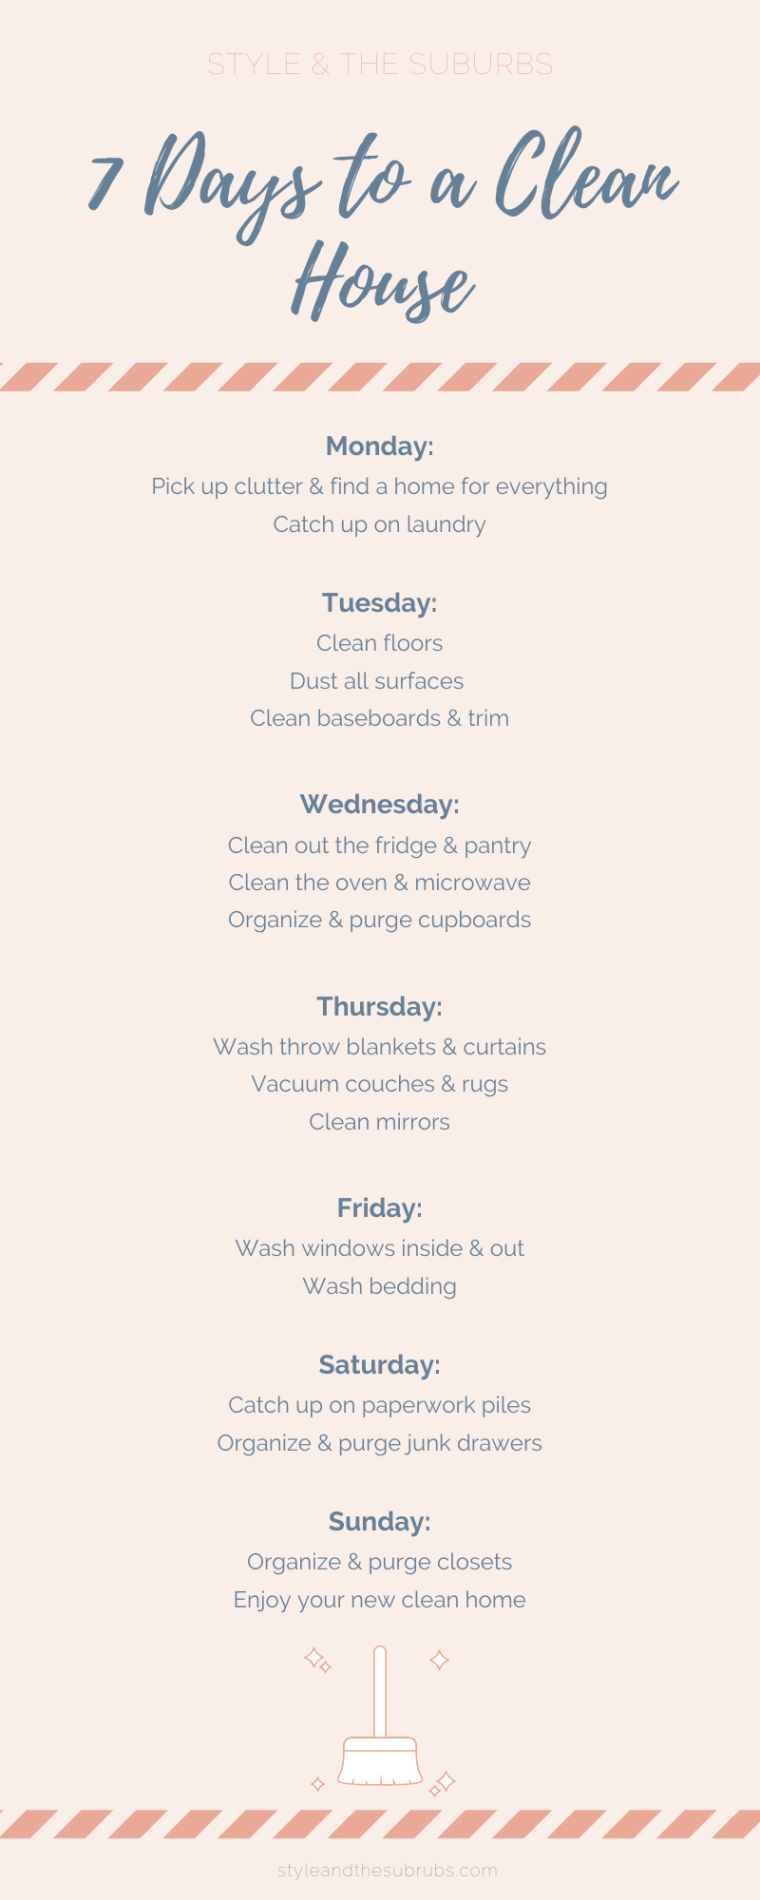 7 Days to a Clean House | Style & the Suburbs